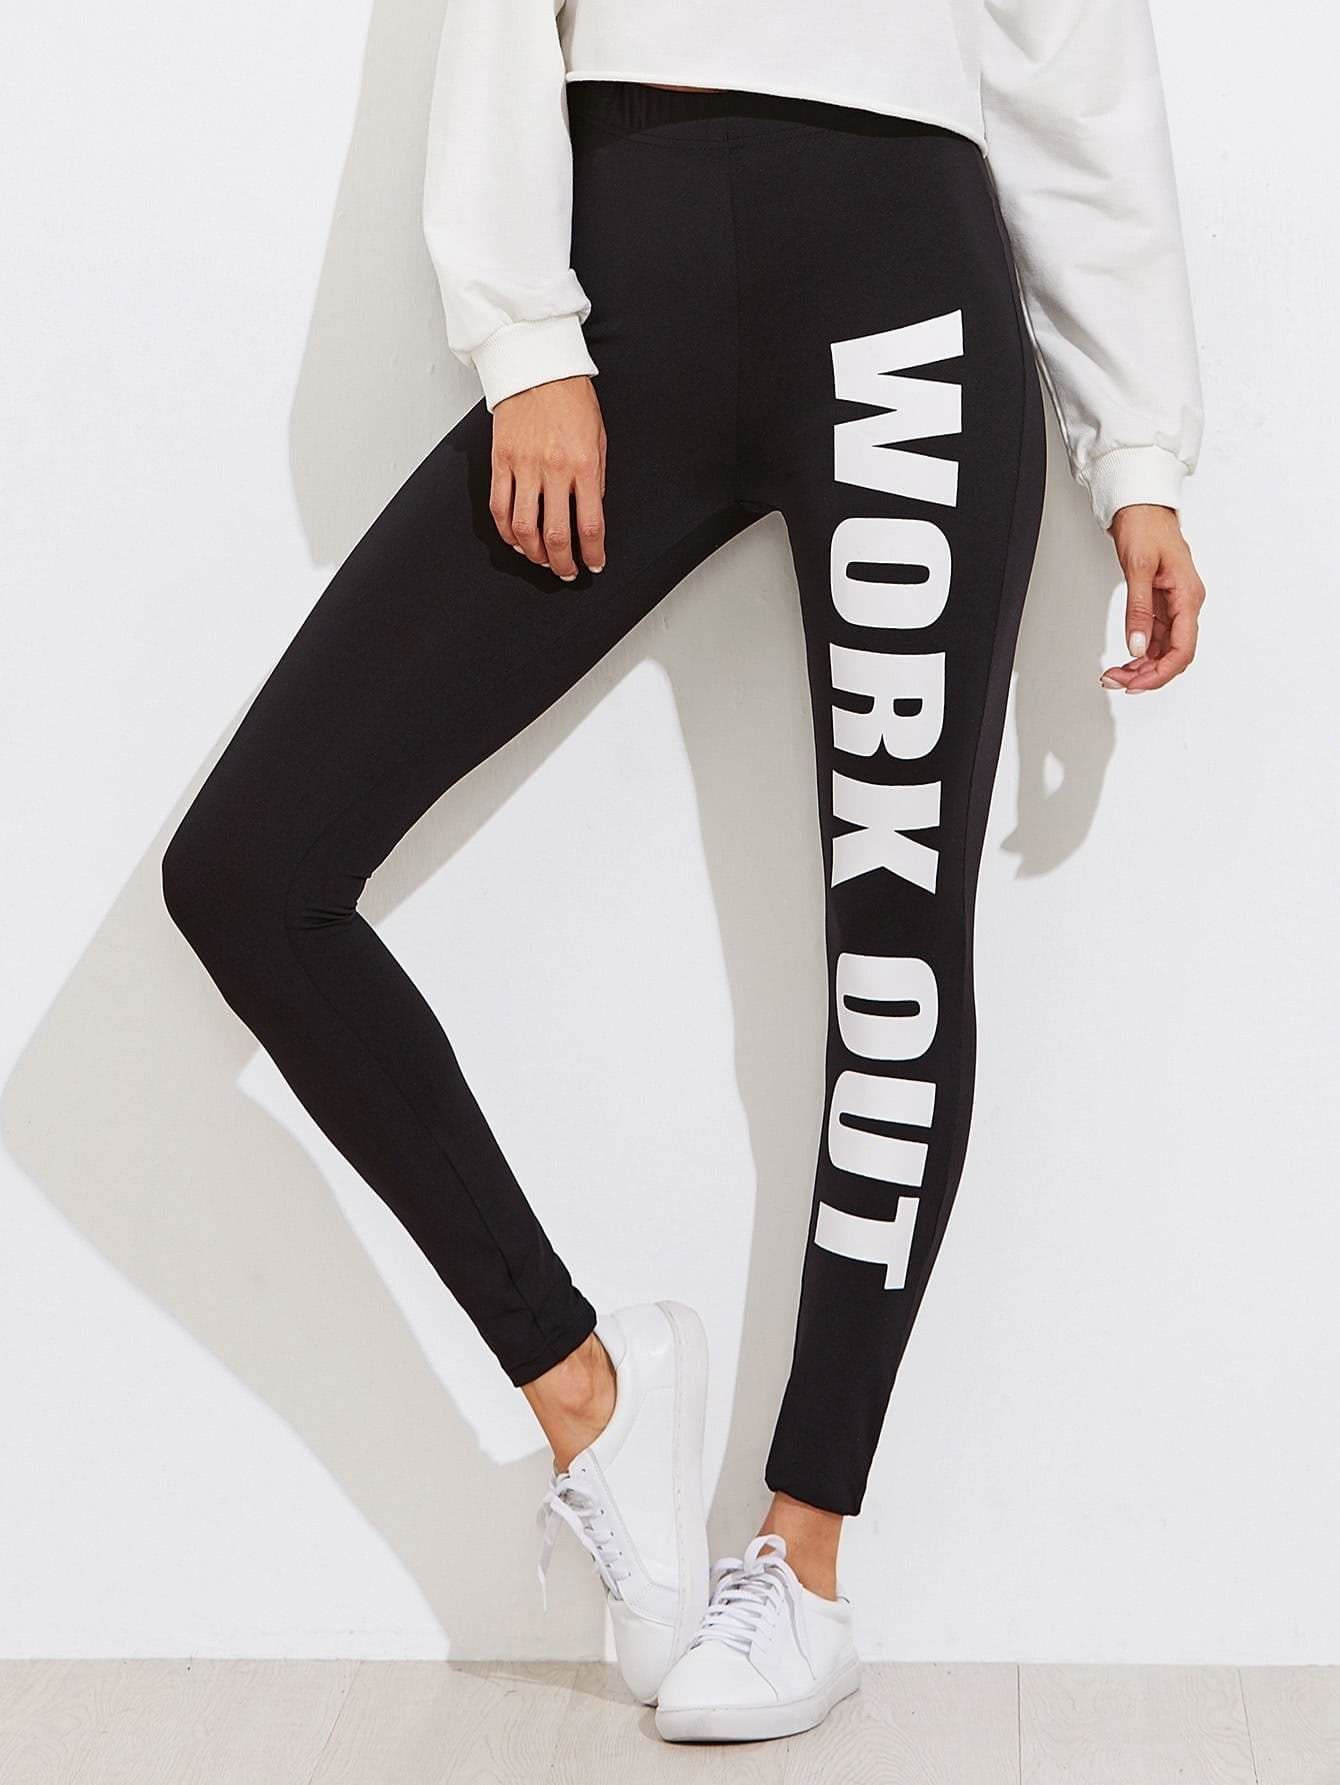 Slogan Print Leggings - Fittness Leggings